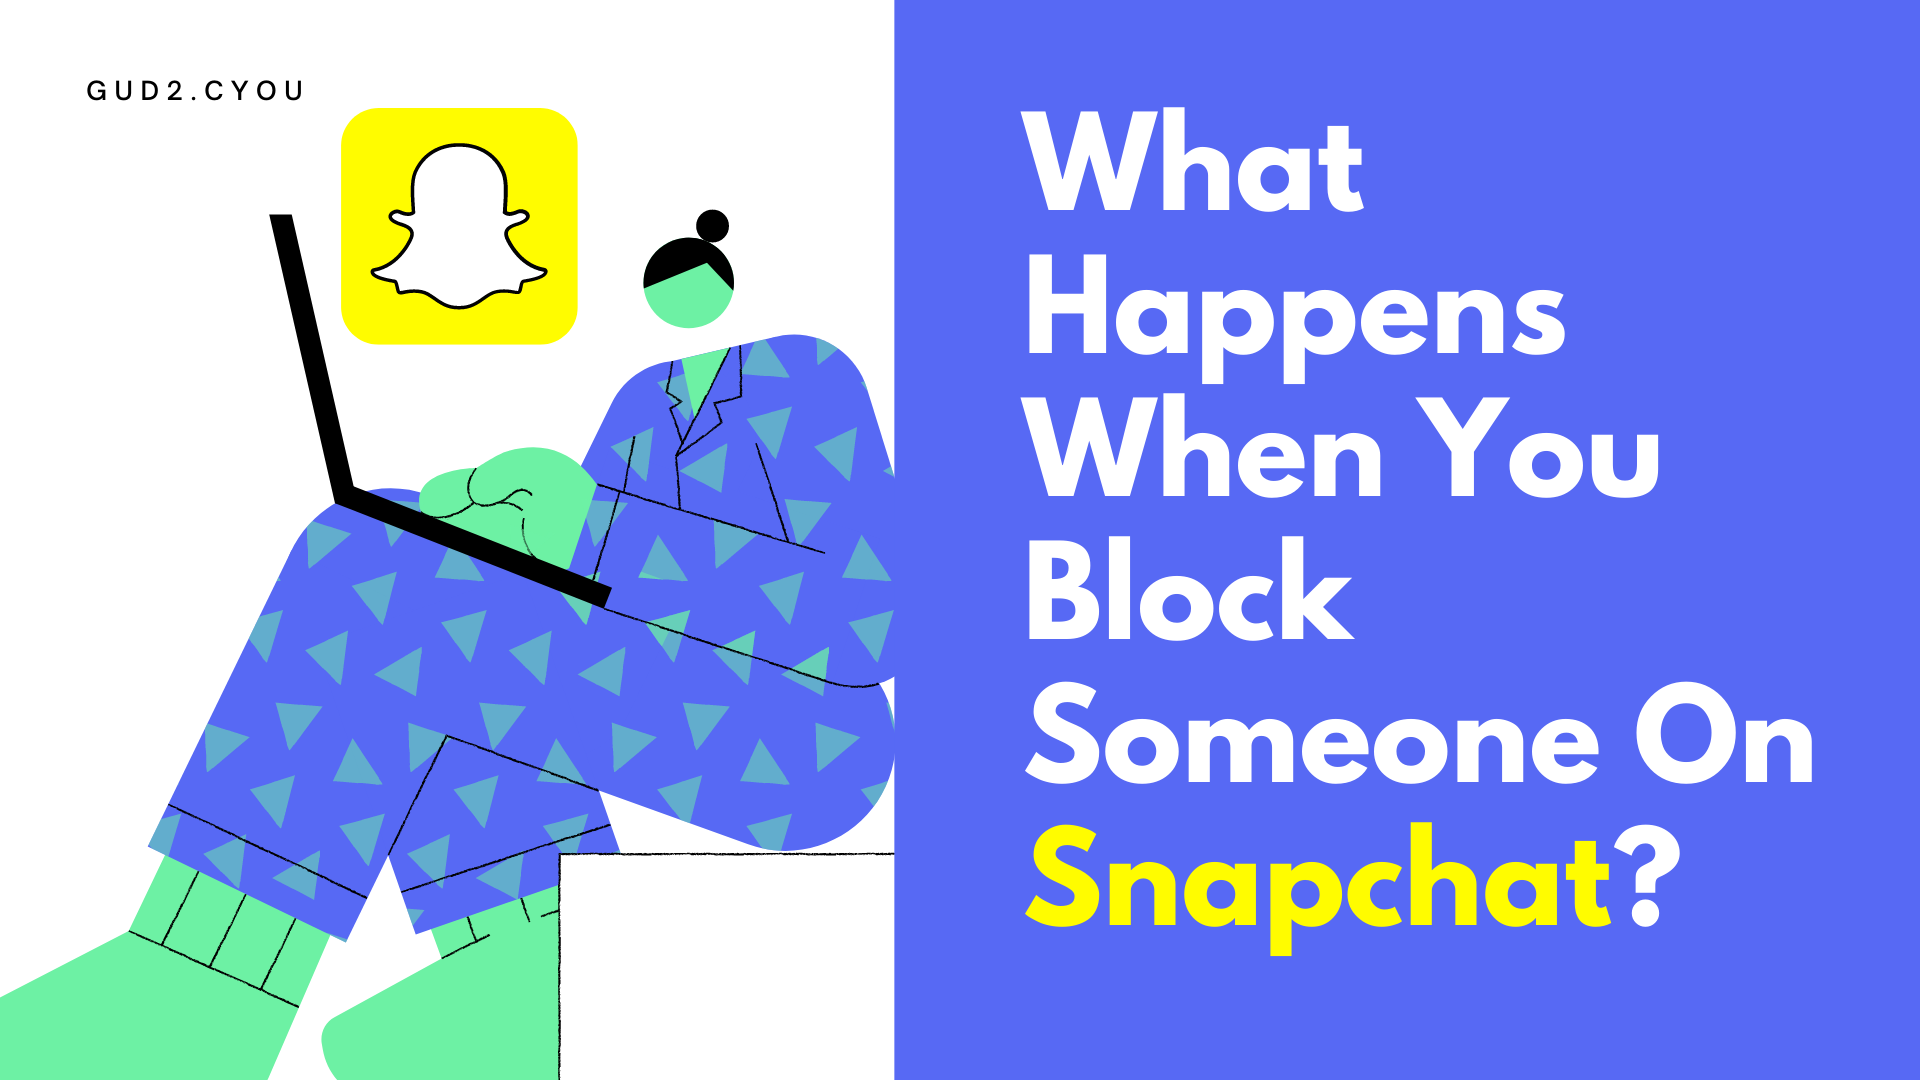 What Happens When You Block Someone On Snapchat